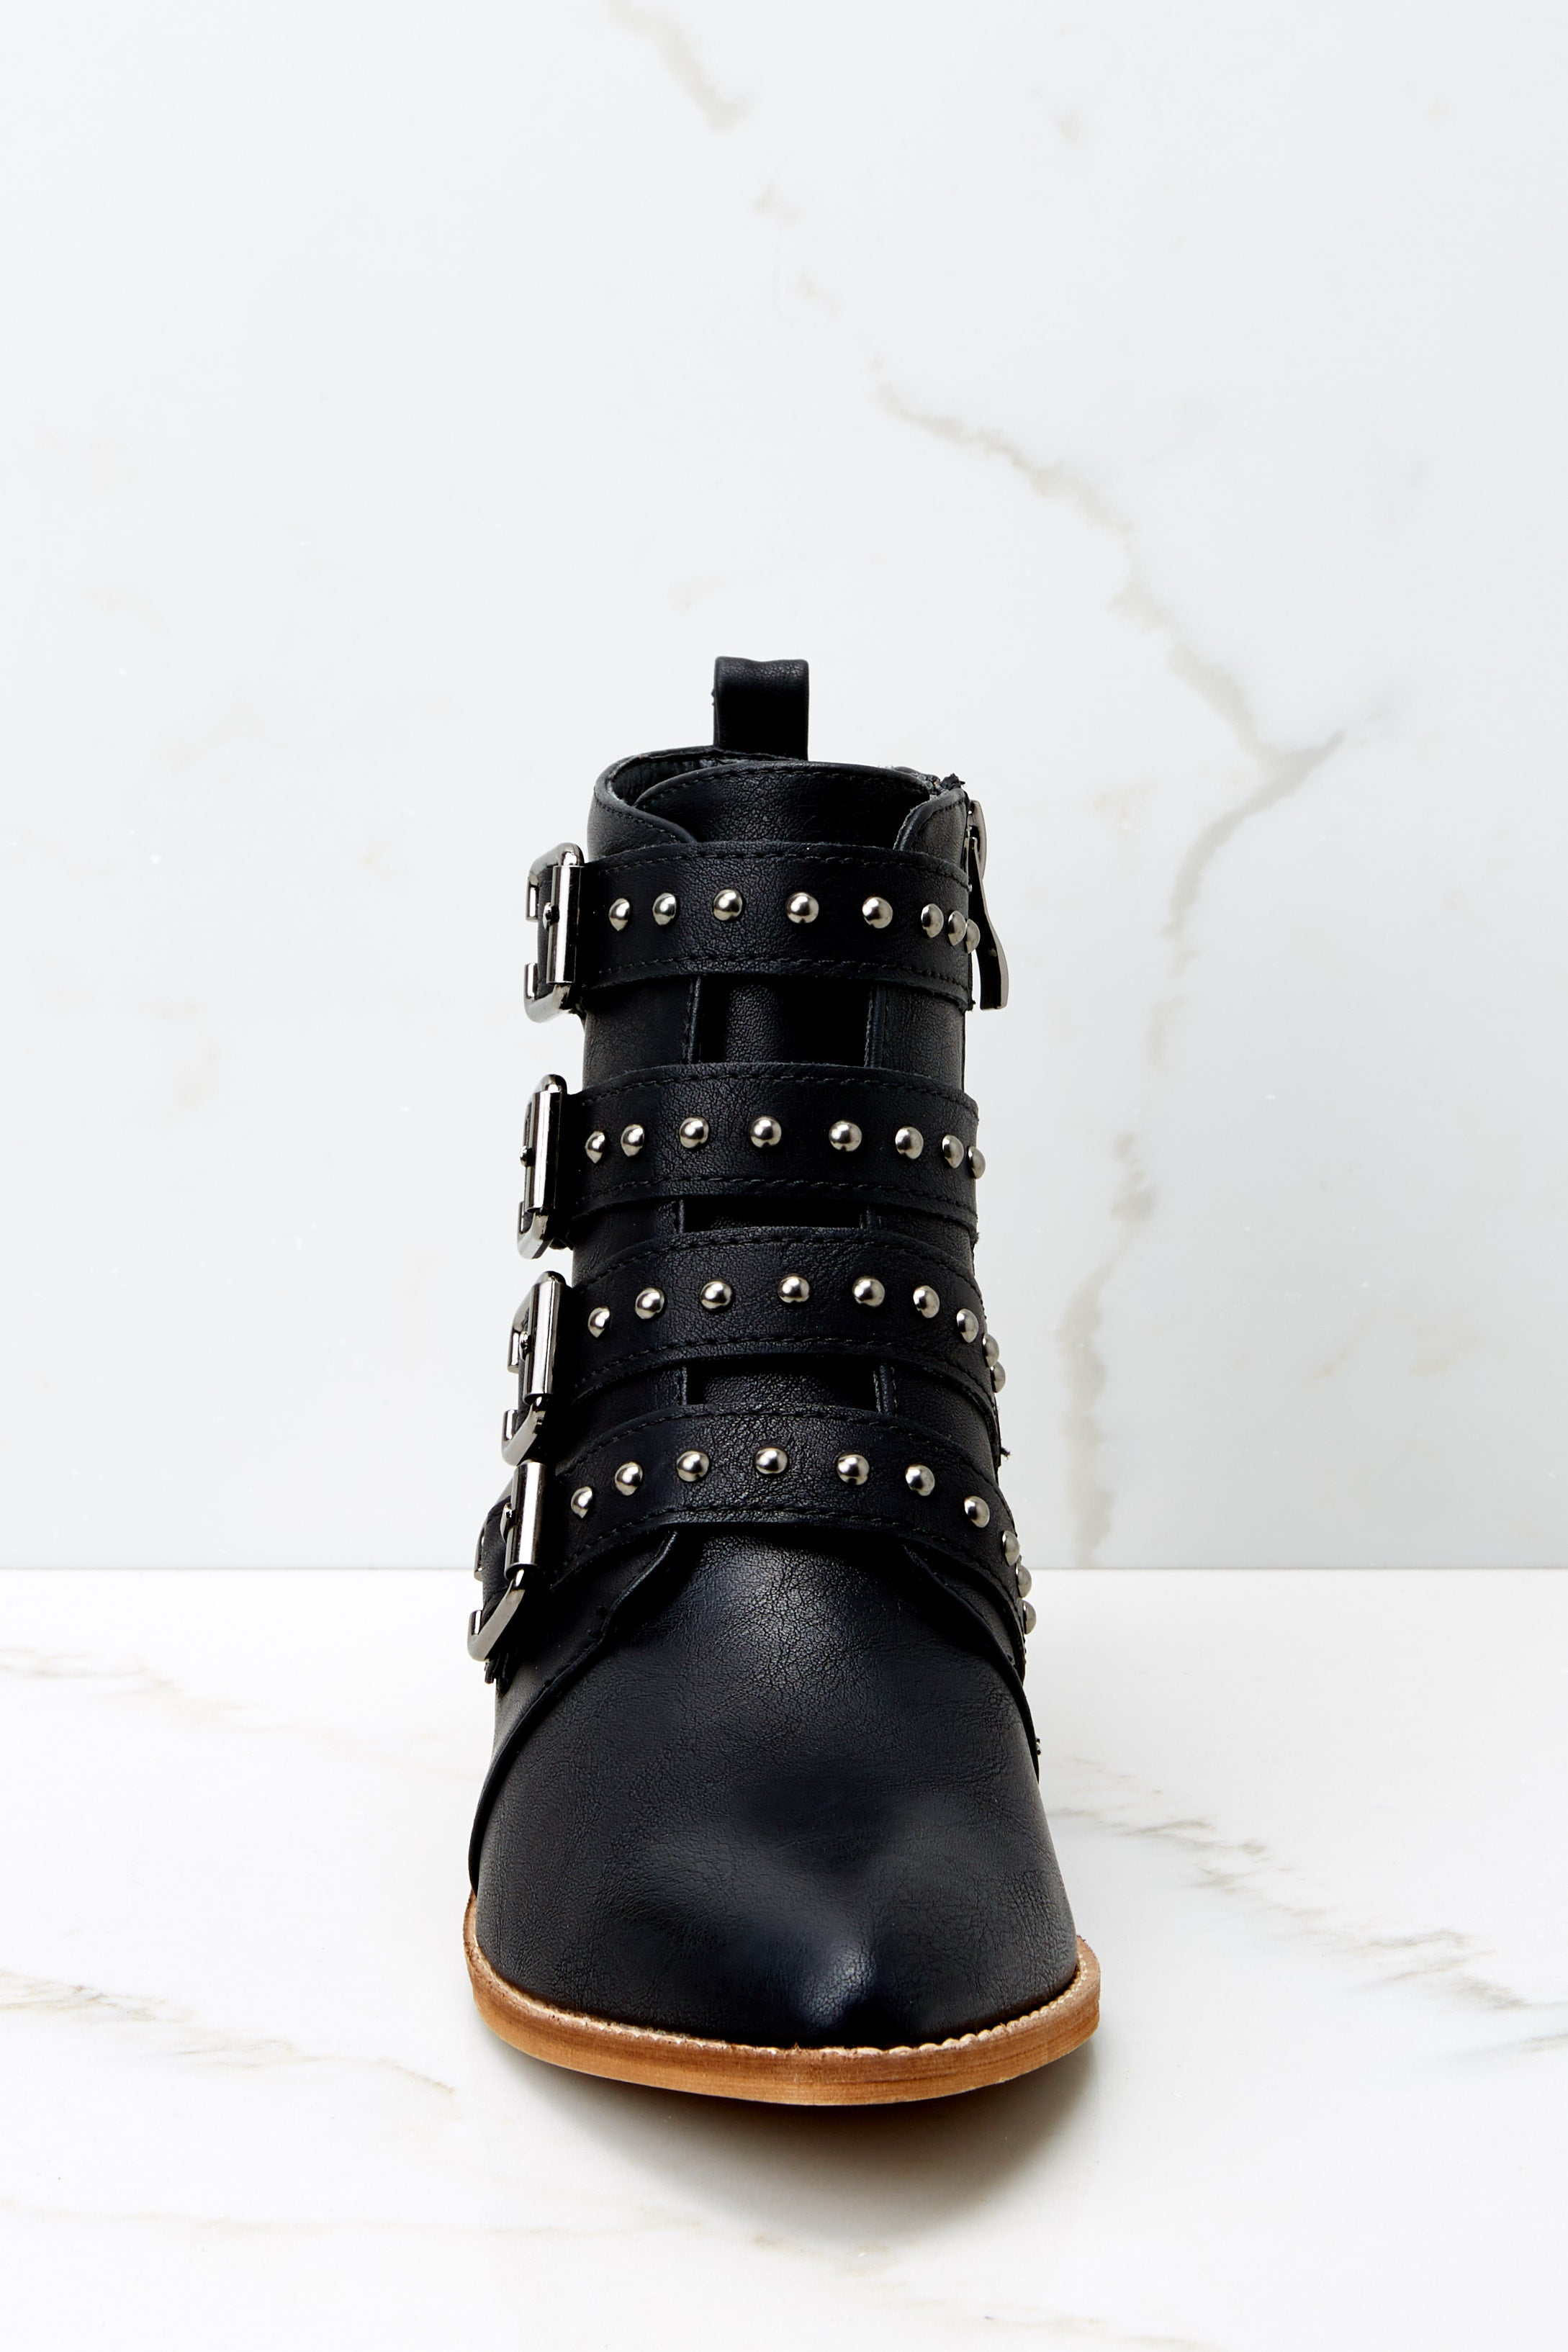 3 City Girl Black Ankle Boots (BACKORDER OCTOBER) @ reddress.com